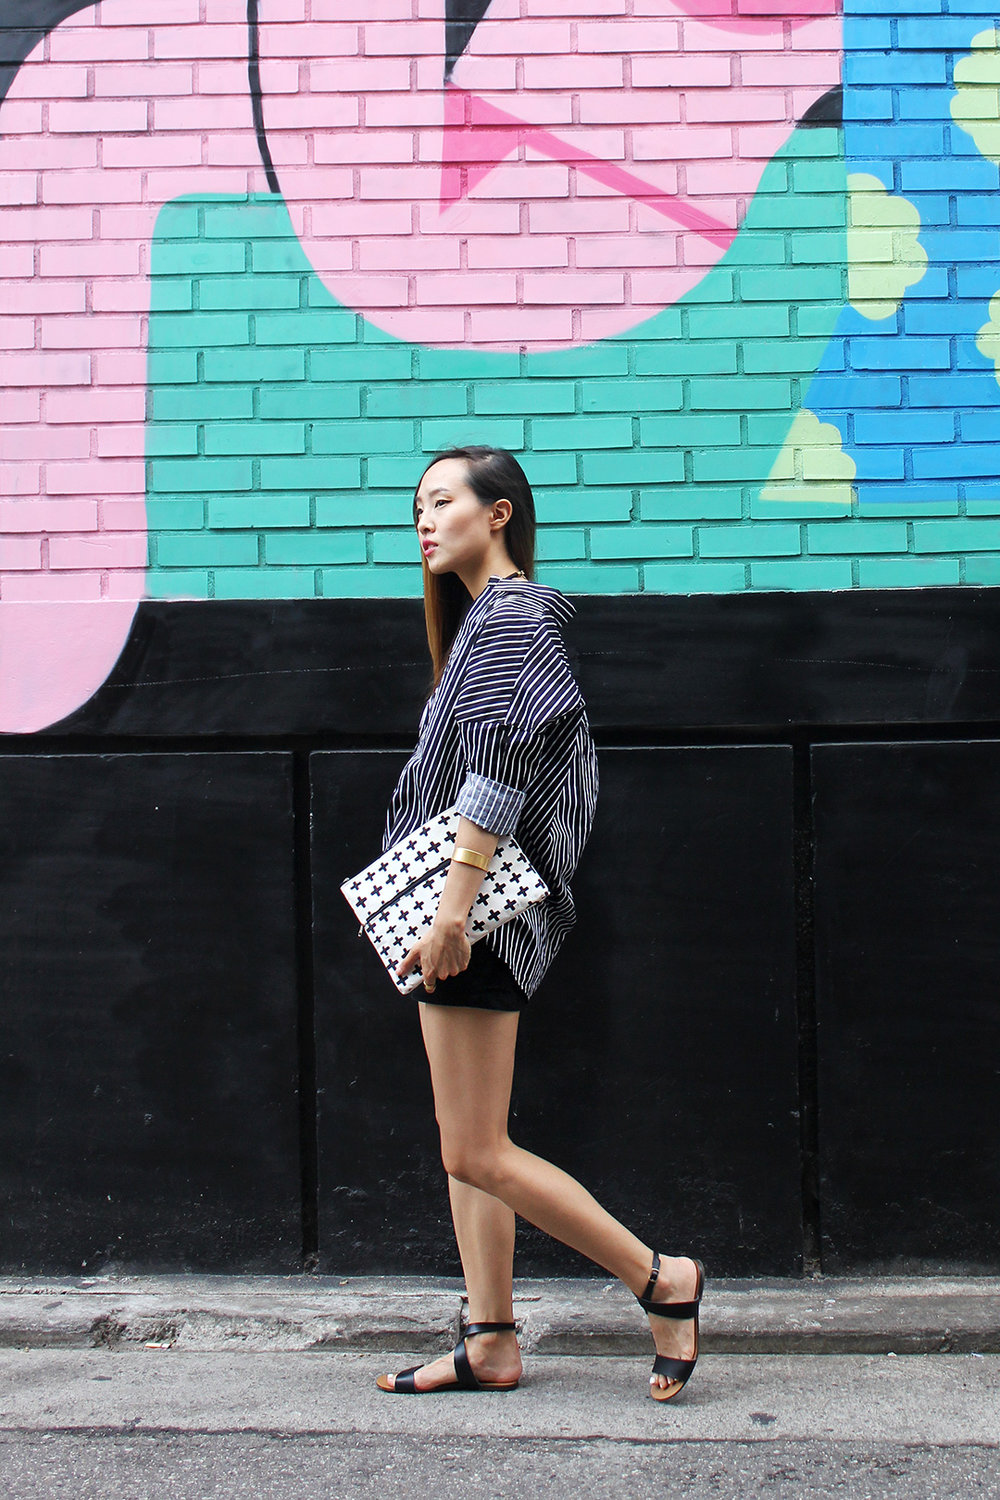 Monochromatic pattern play in Itaewon Clutch by Butter, sandals by J.Crew